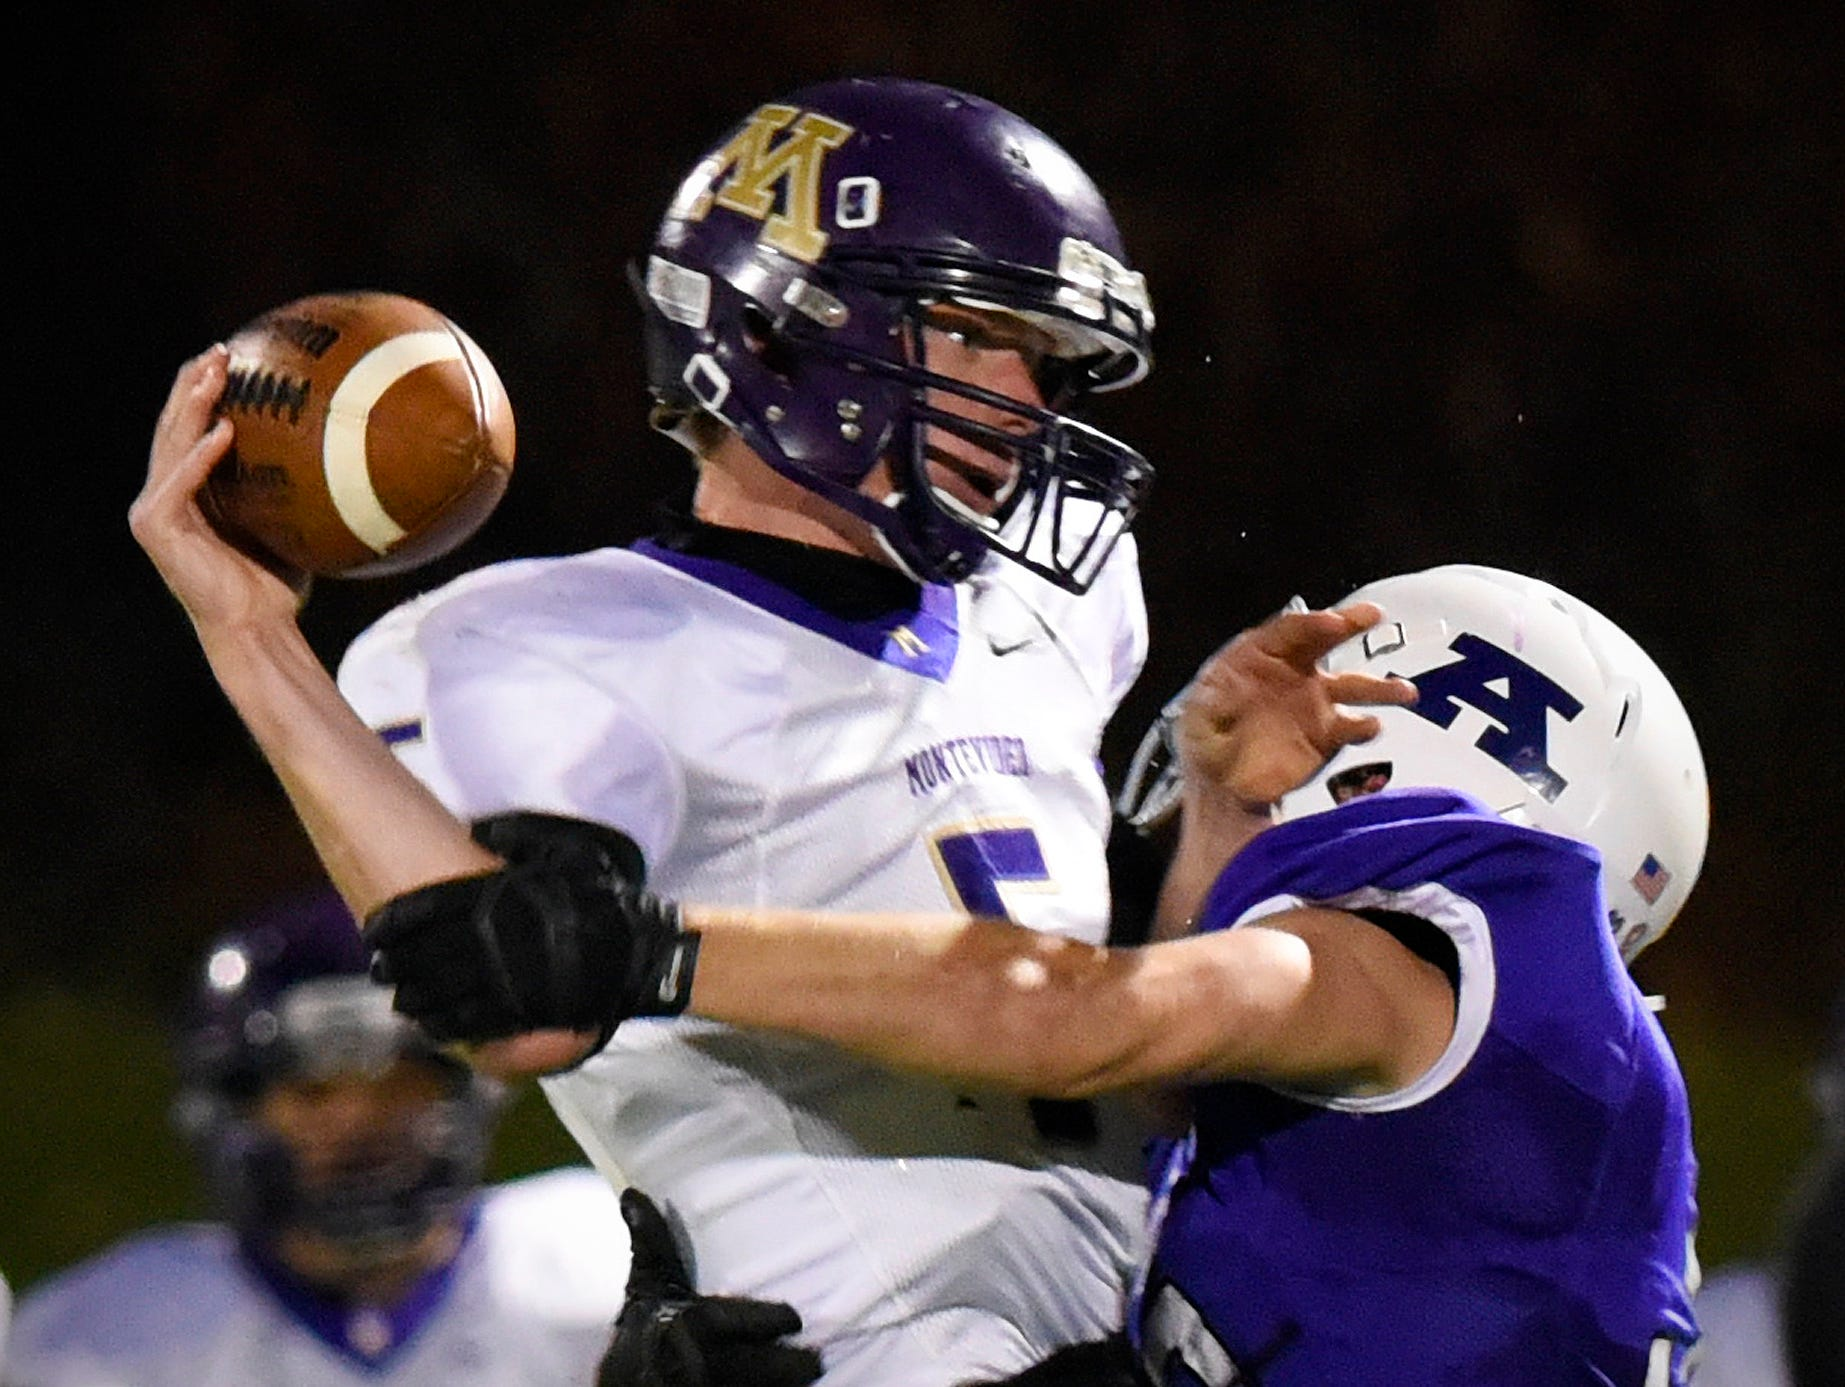 Albany's Kytle Birr hits Montevideo's quarterback Troy Diggins causing him to throw an interception during the first half Saturday, Oct. 24 at Husky Stadium.